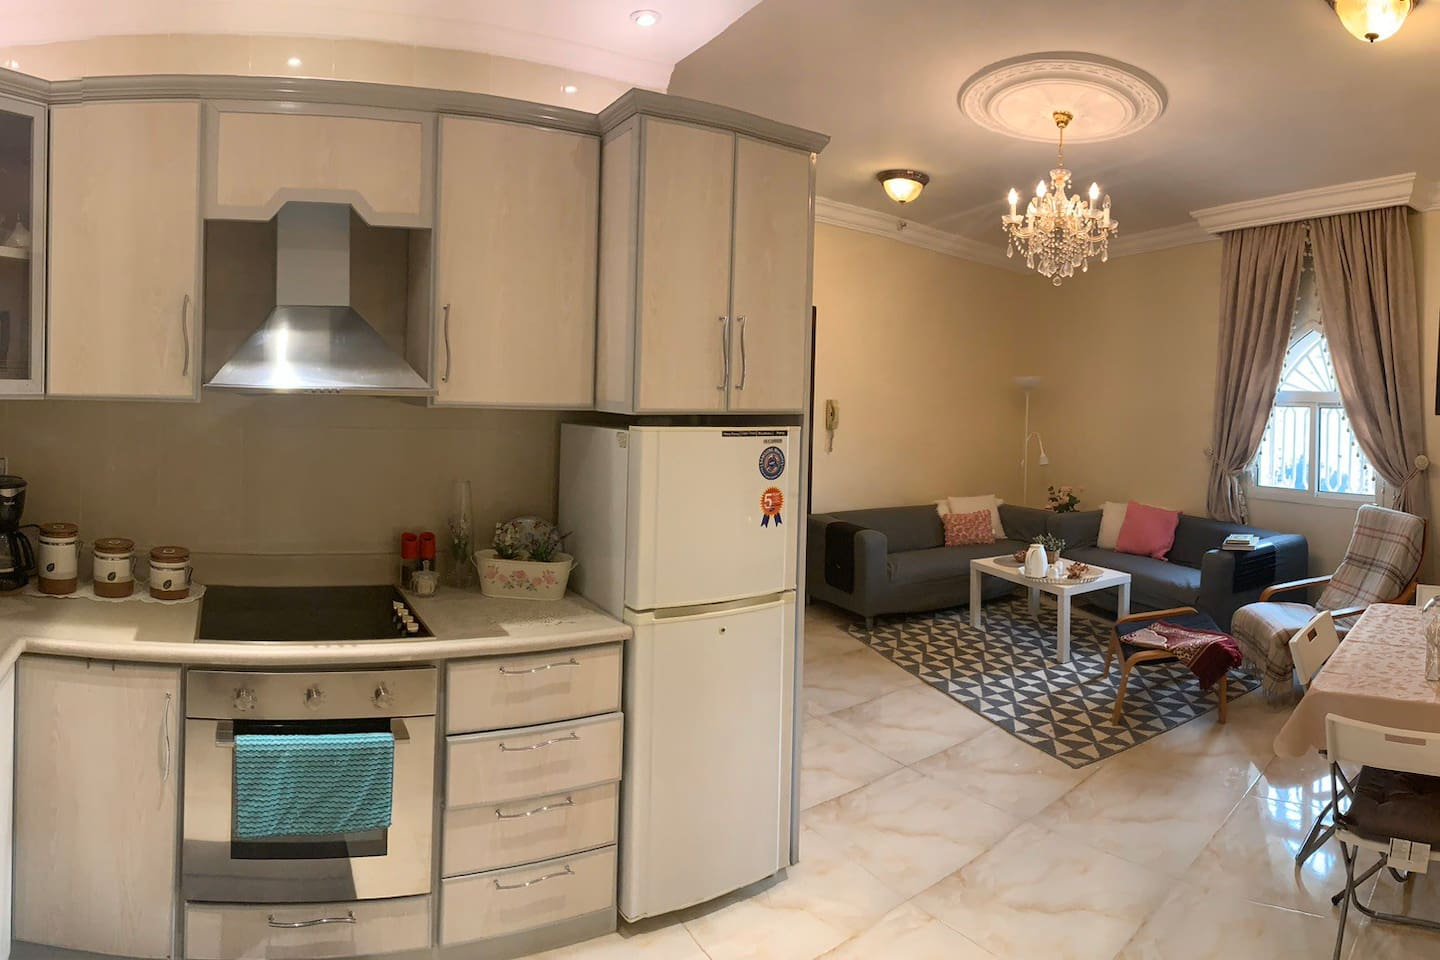 Panoramic view of the main living area showing the full kitchen, dining table, and living room